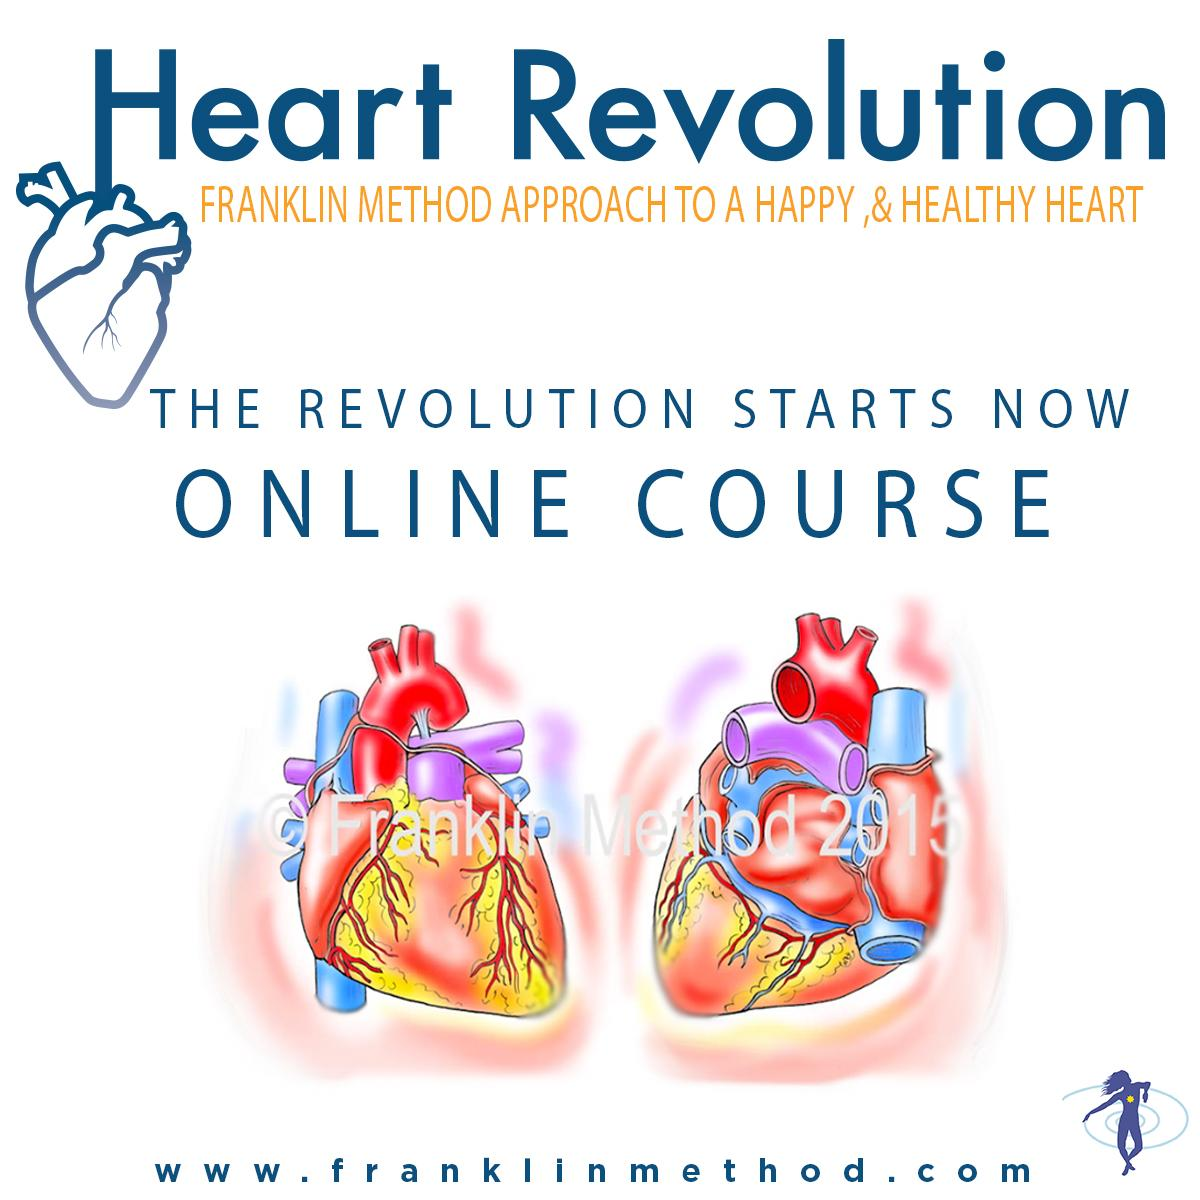 Heart Revolution The Franklin Method Approach To A Happy